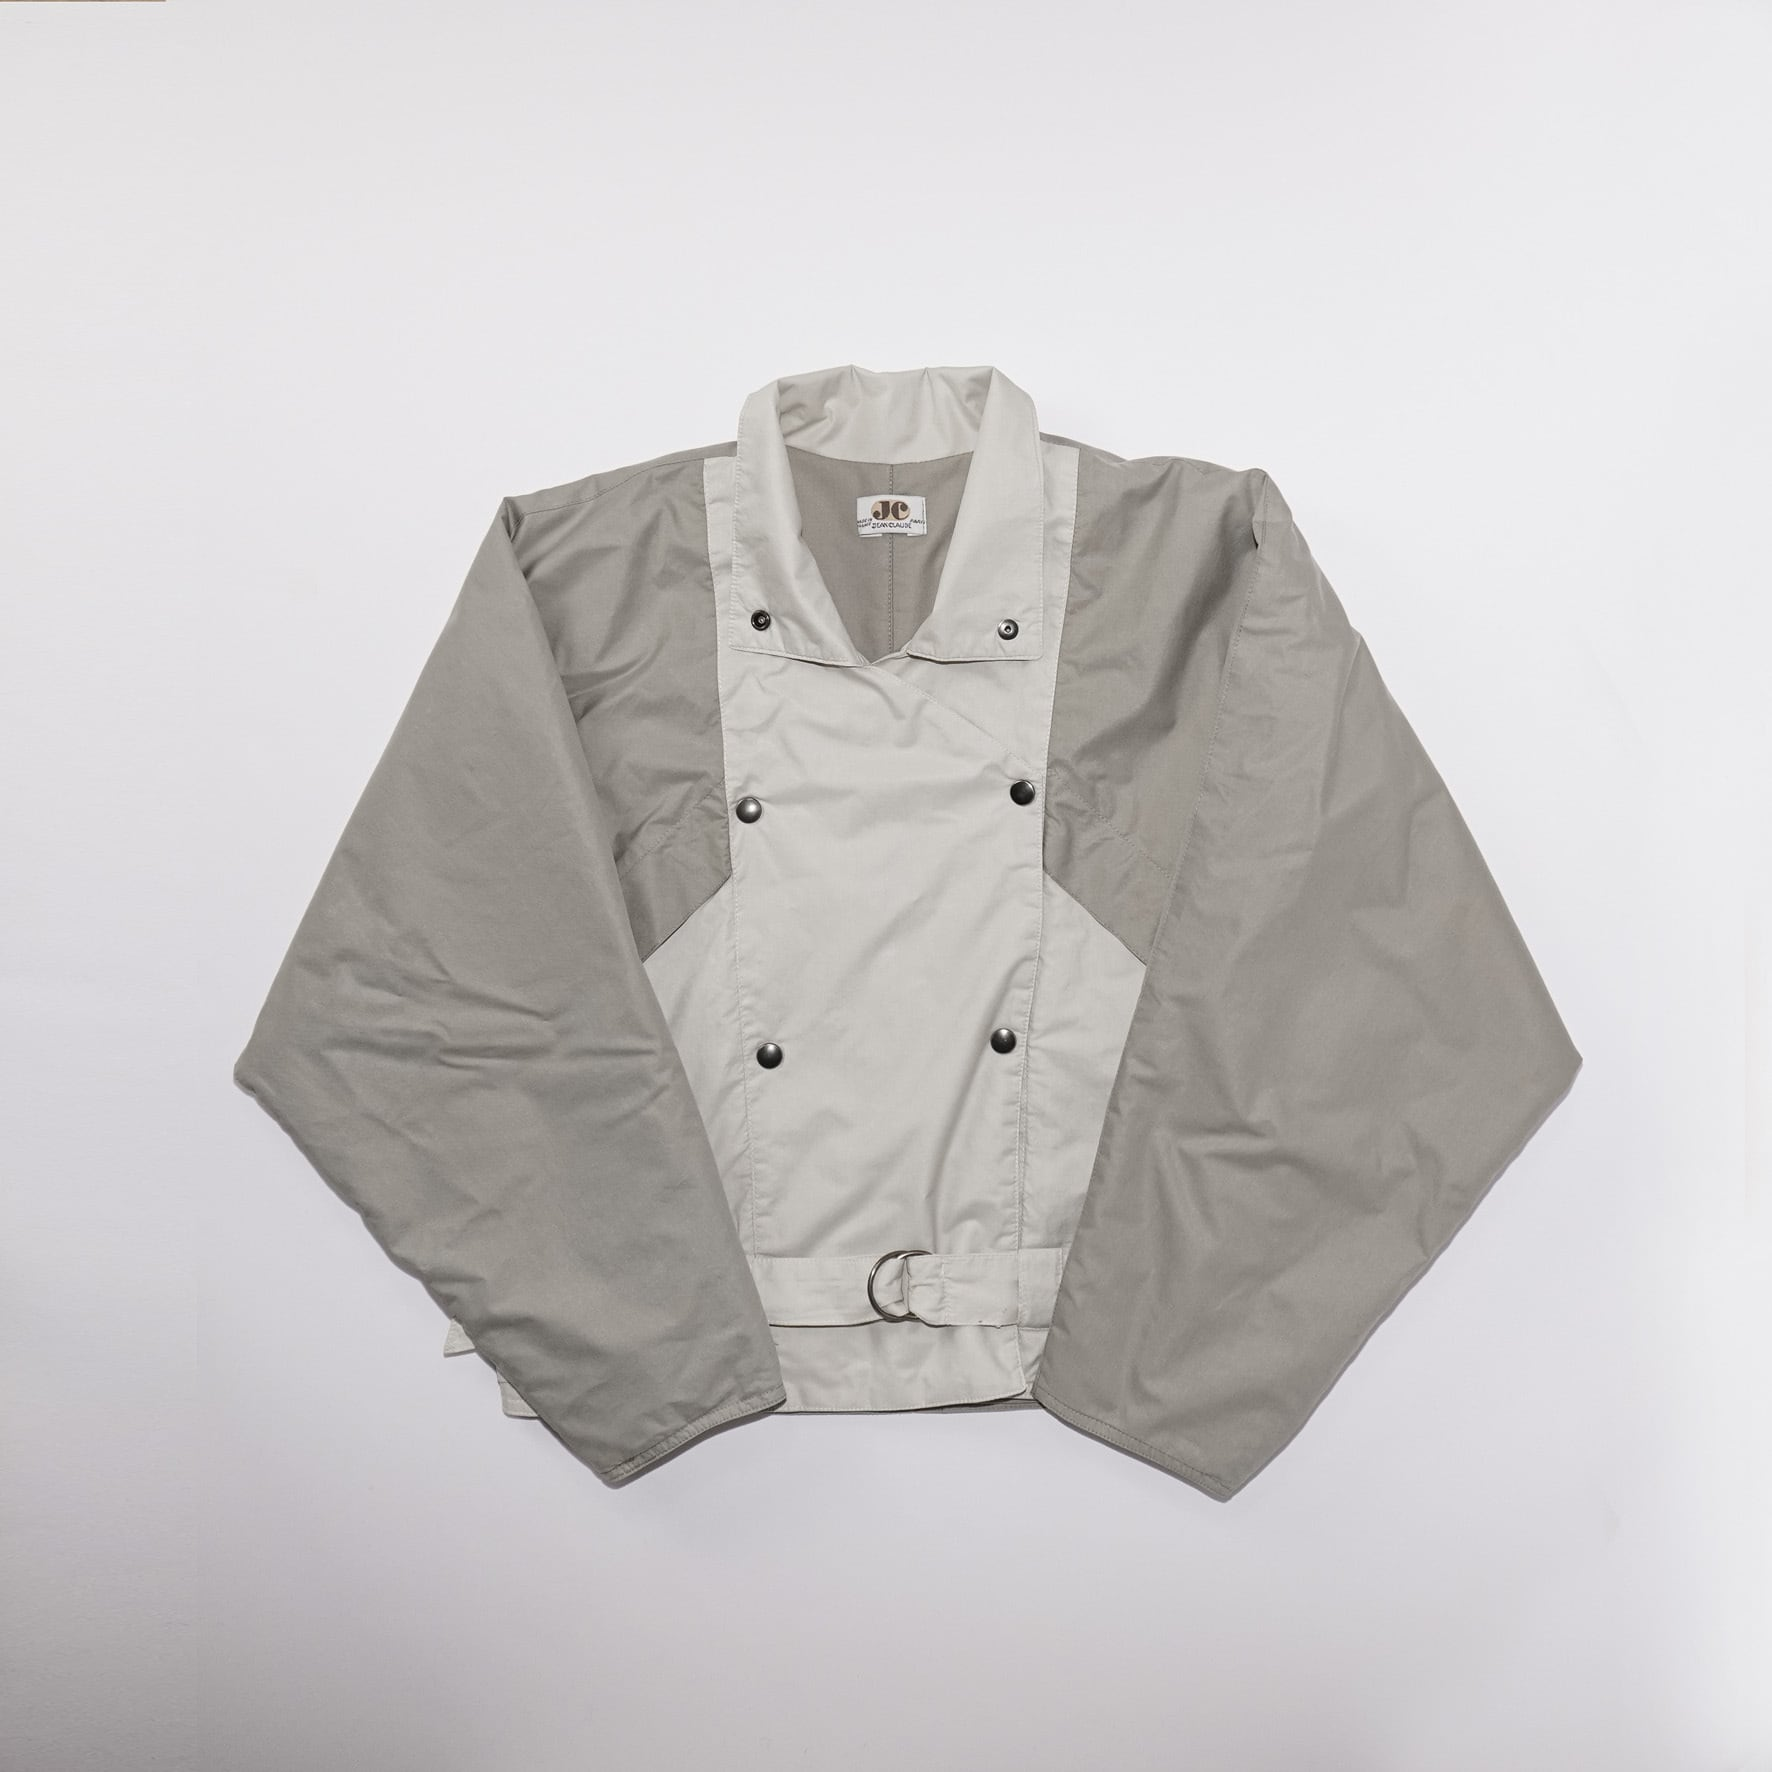 【MADE IN FRANCE】JEAN CLAUDE ショートライトジャケット